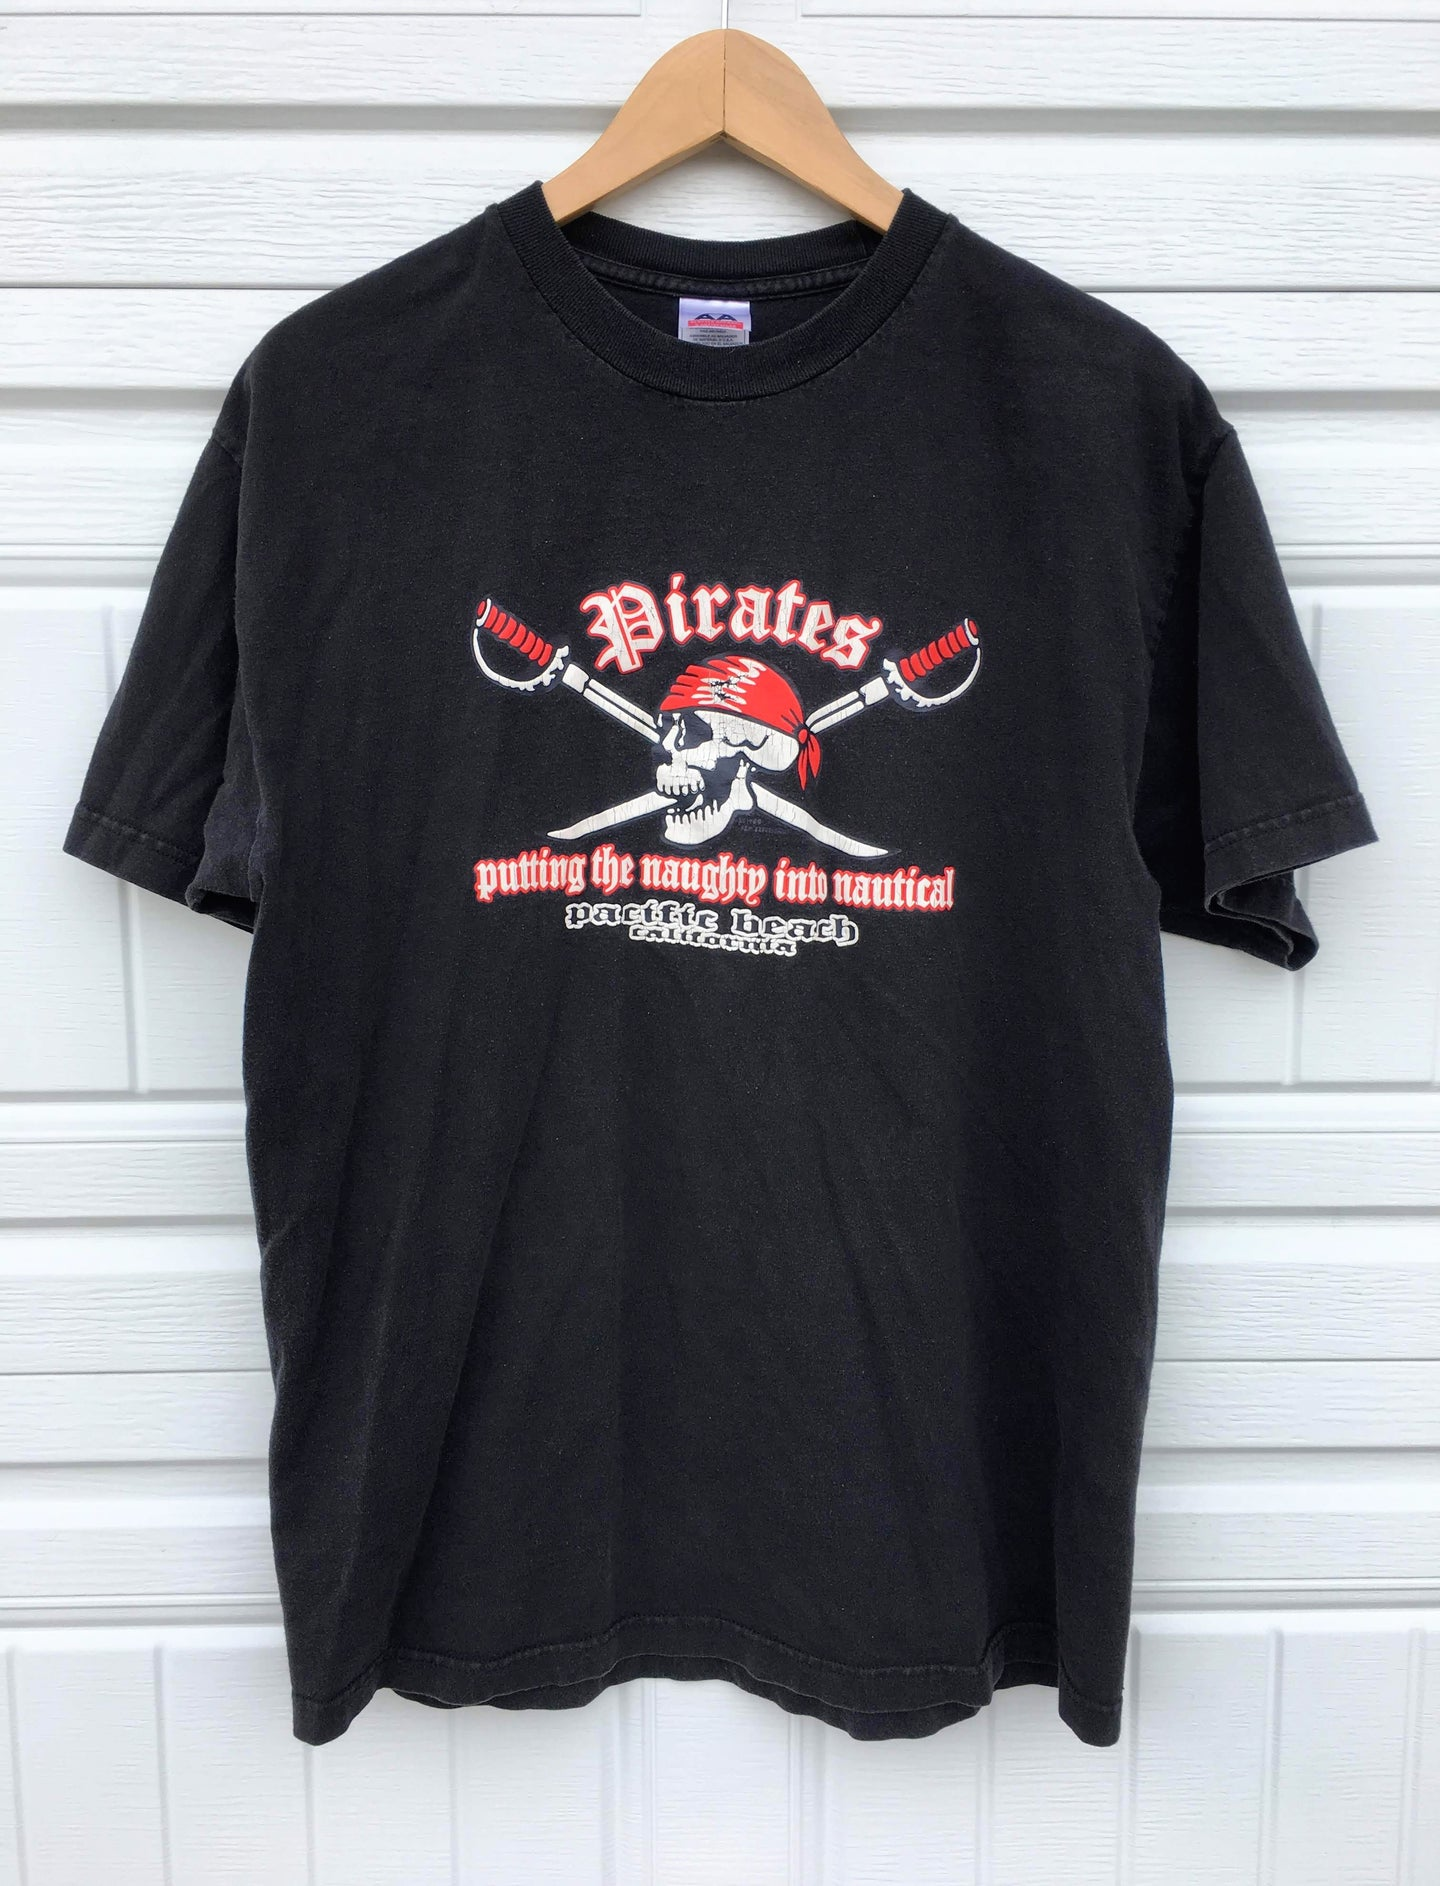 Naughty Pirates Tee - Large